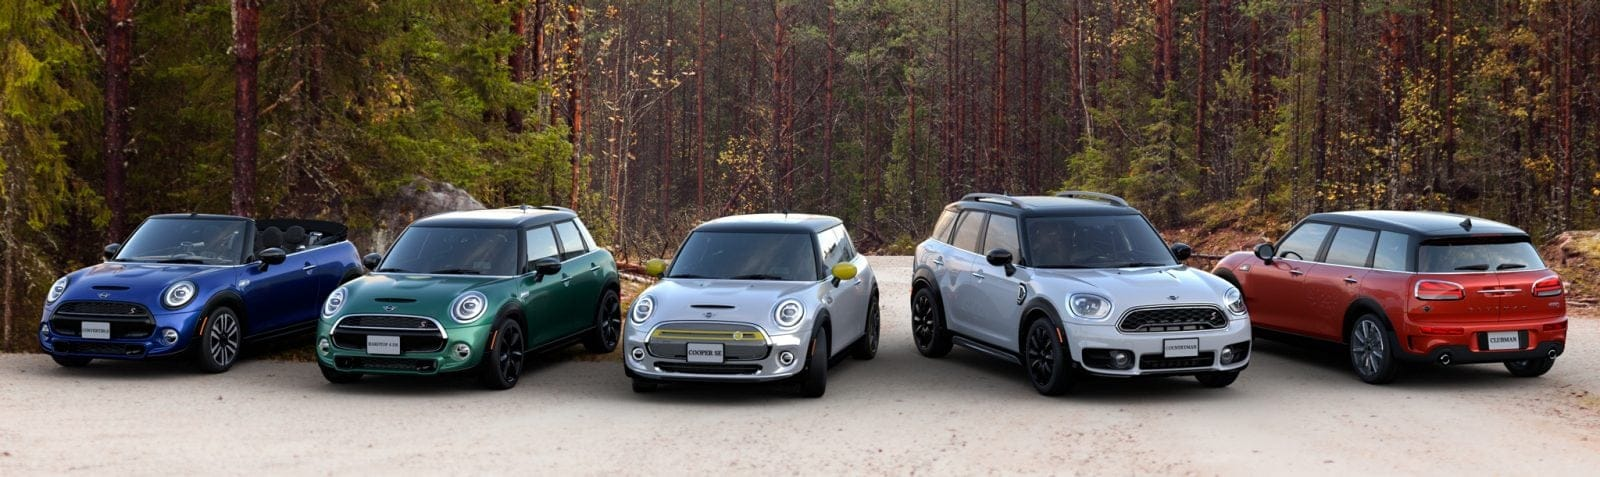 MINI family of vehicles with forest background.